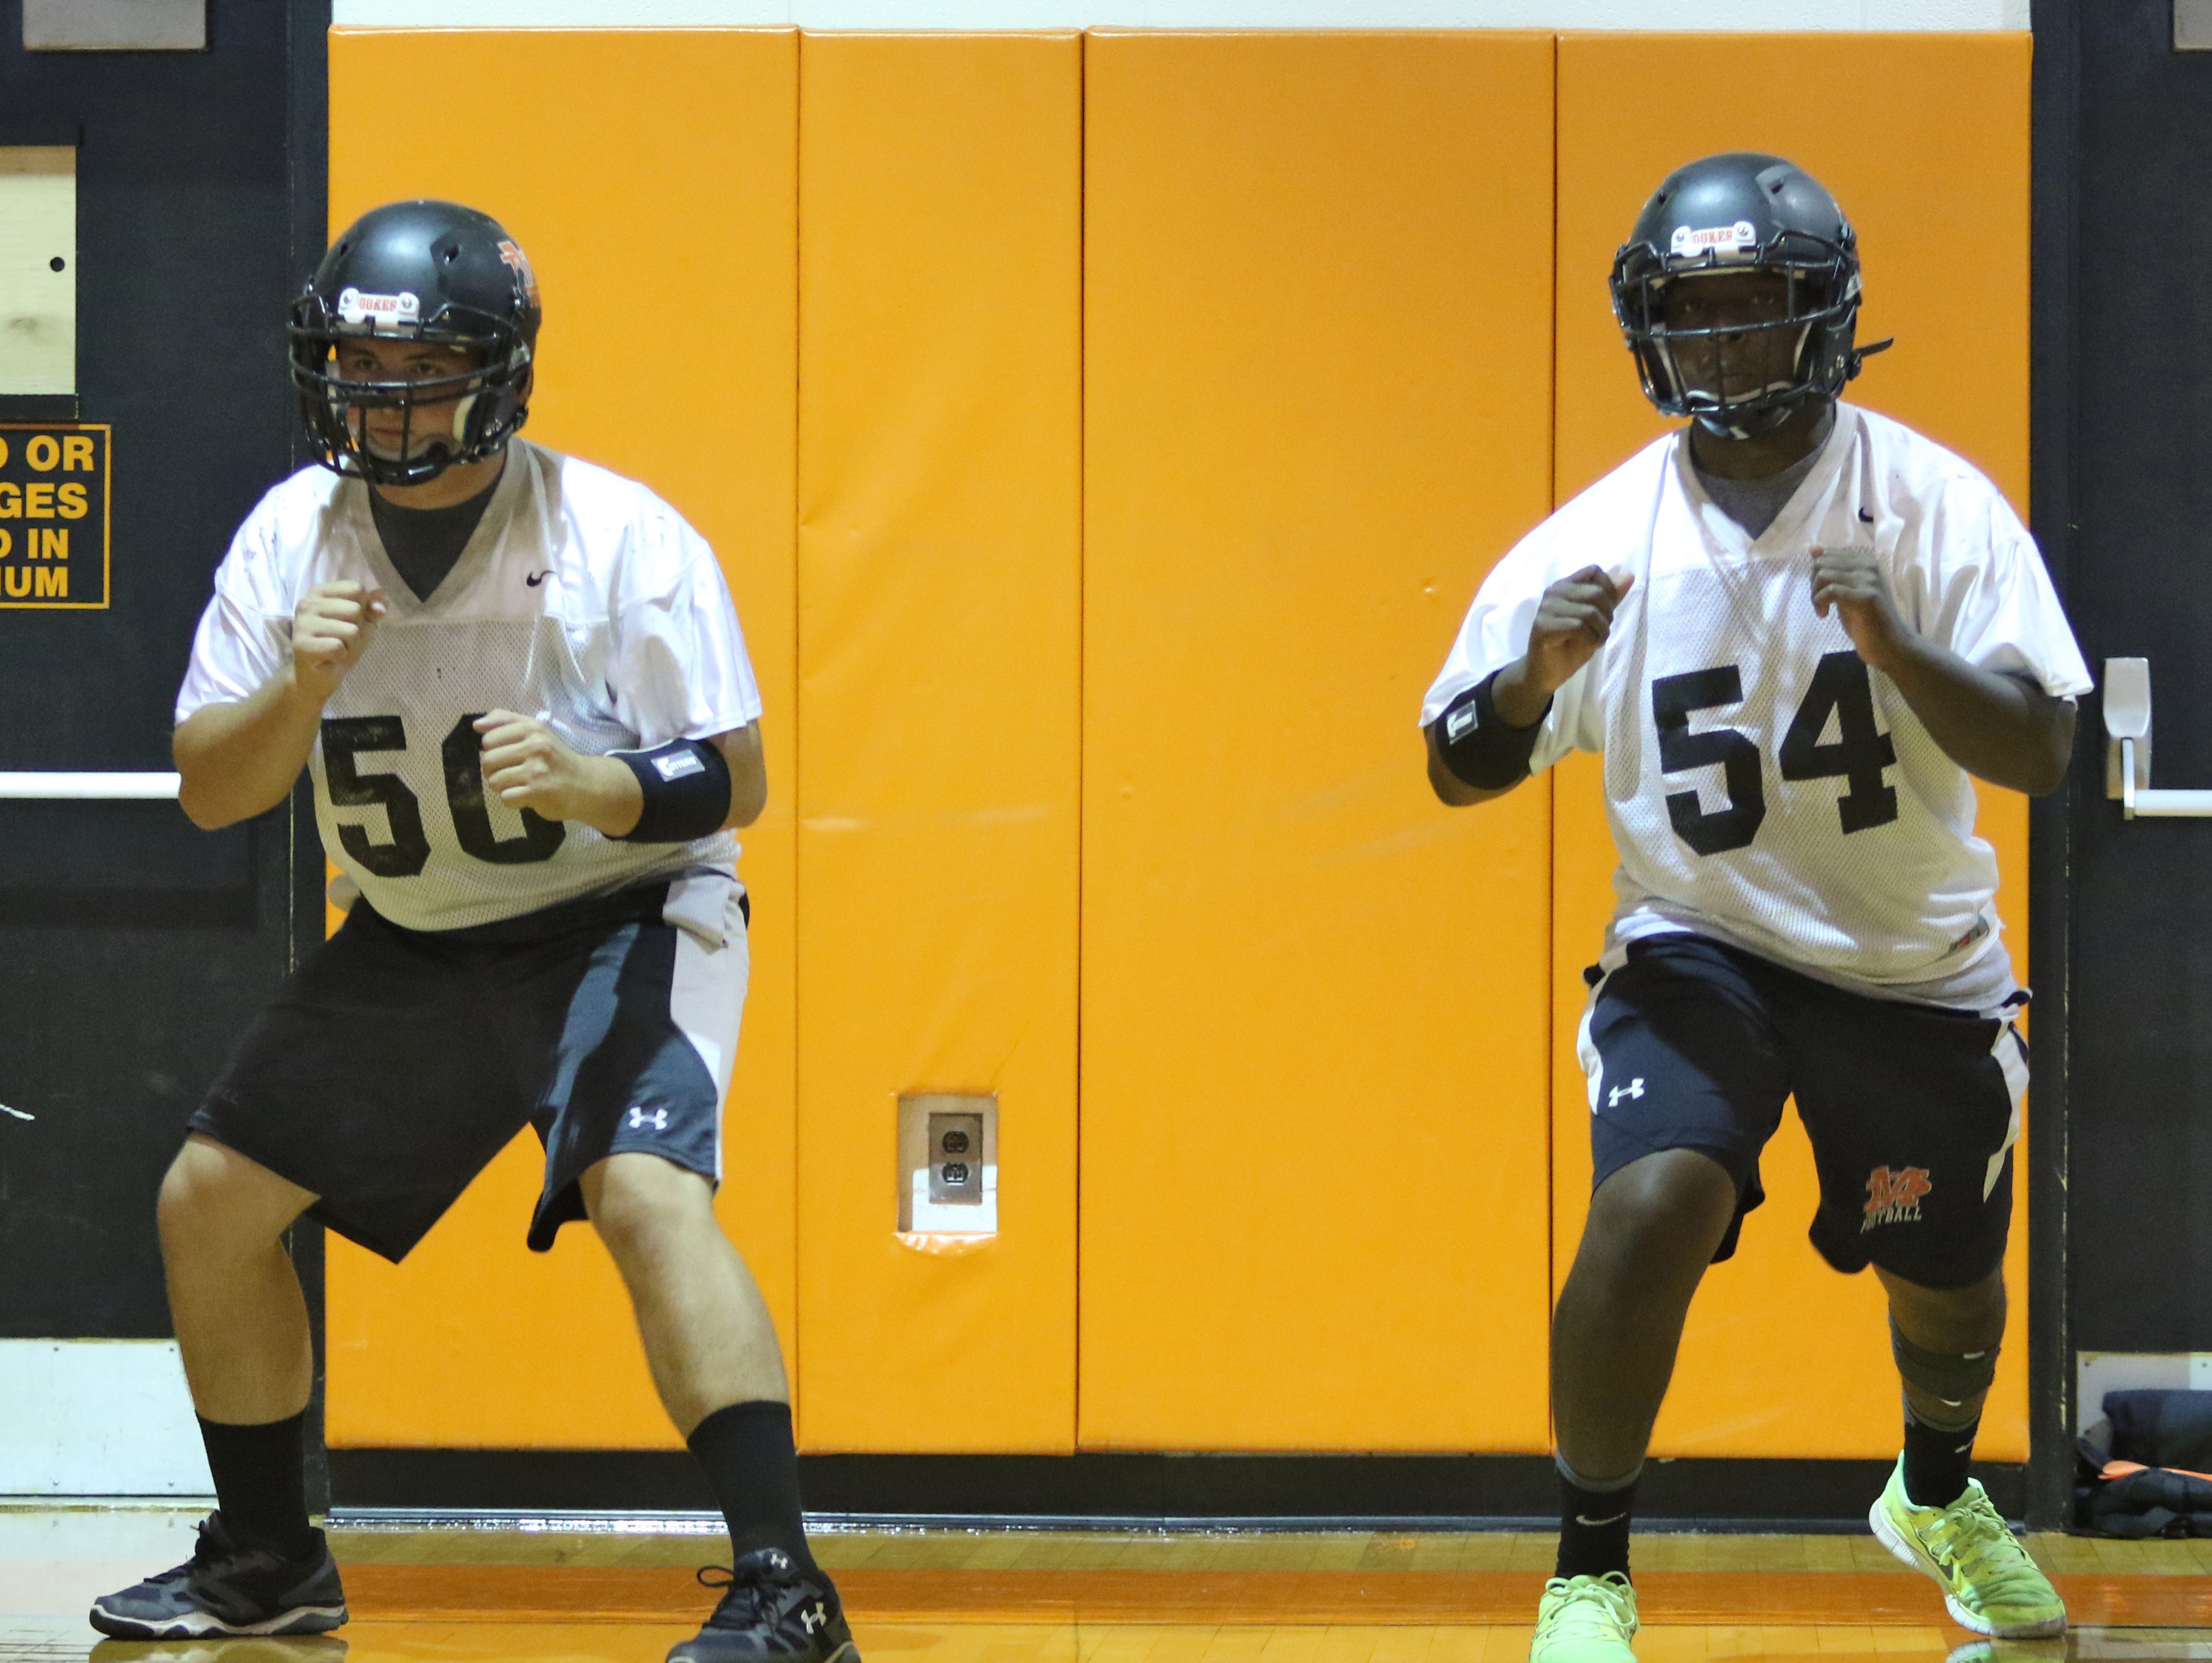 Marlboro High School's, from left, Josh Jennison, and Tayo Akinboboye during a drill at football practice on Wednesday.